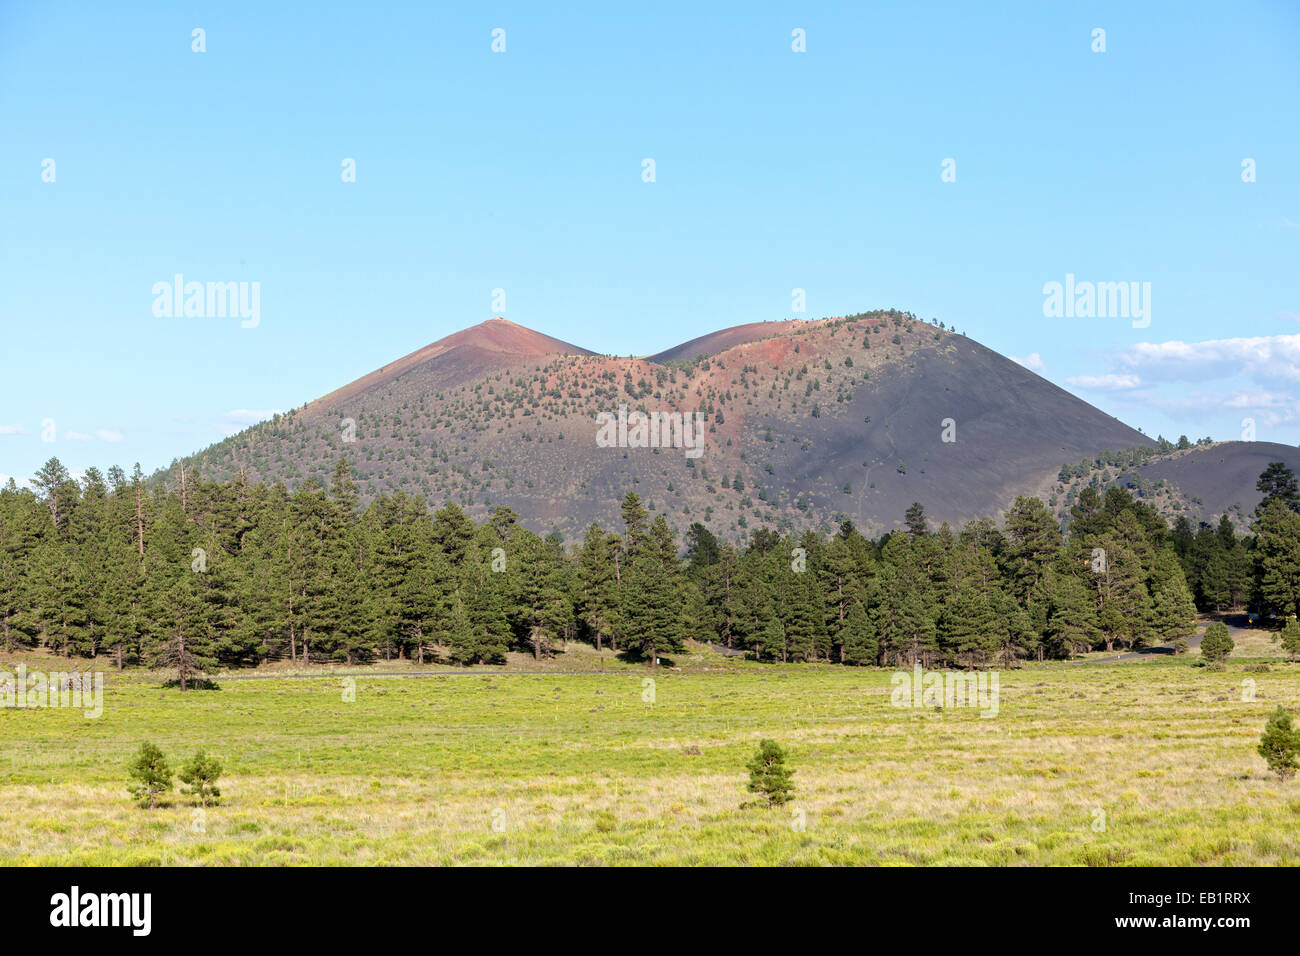 A view of Sunset Crater Volcano National Monument, Arizona. - Stock Image